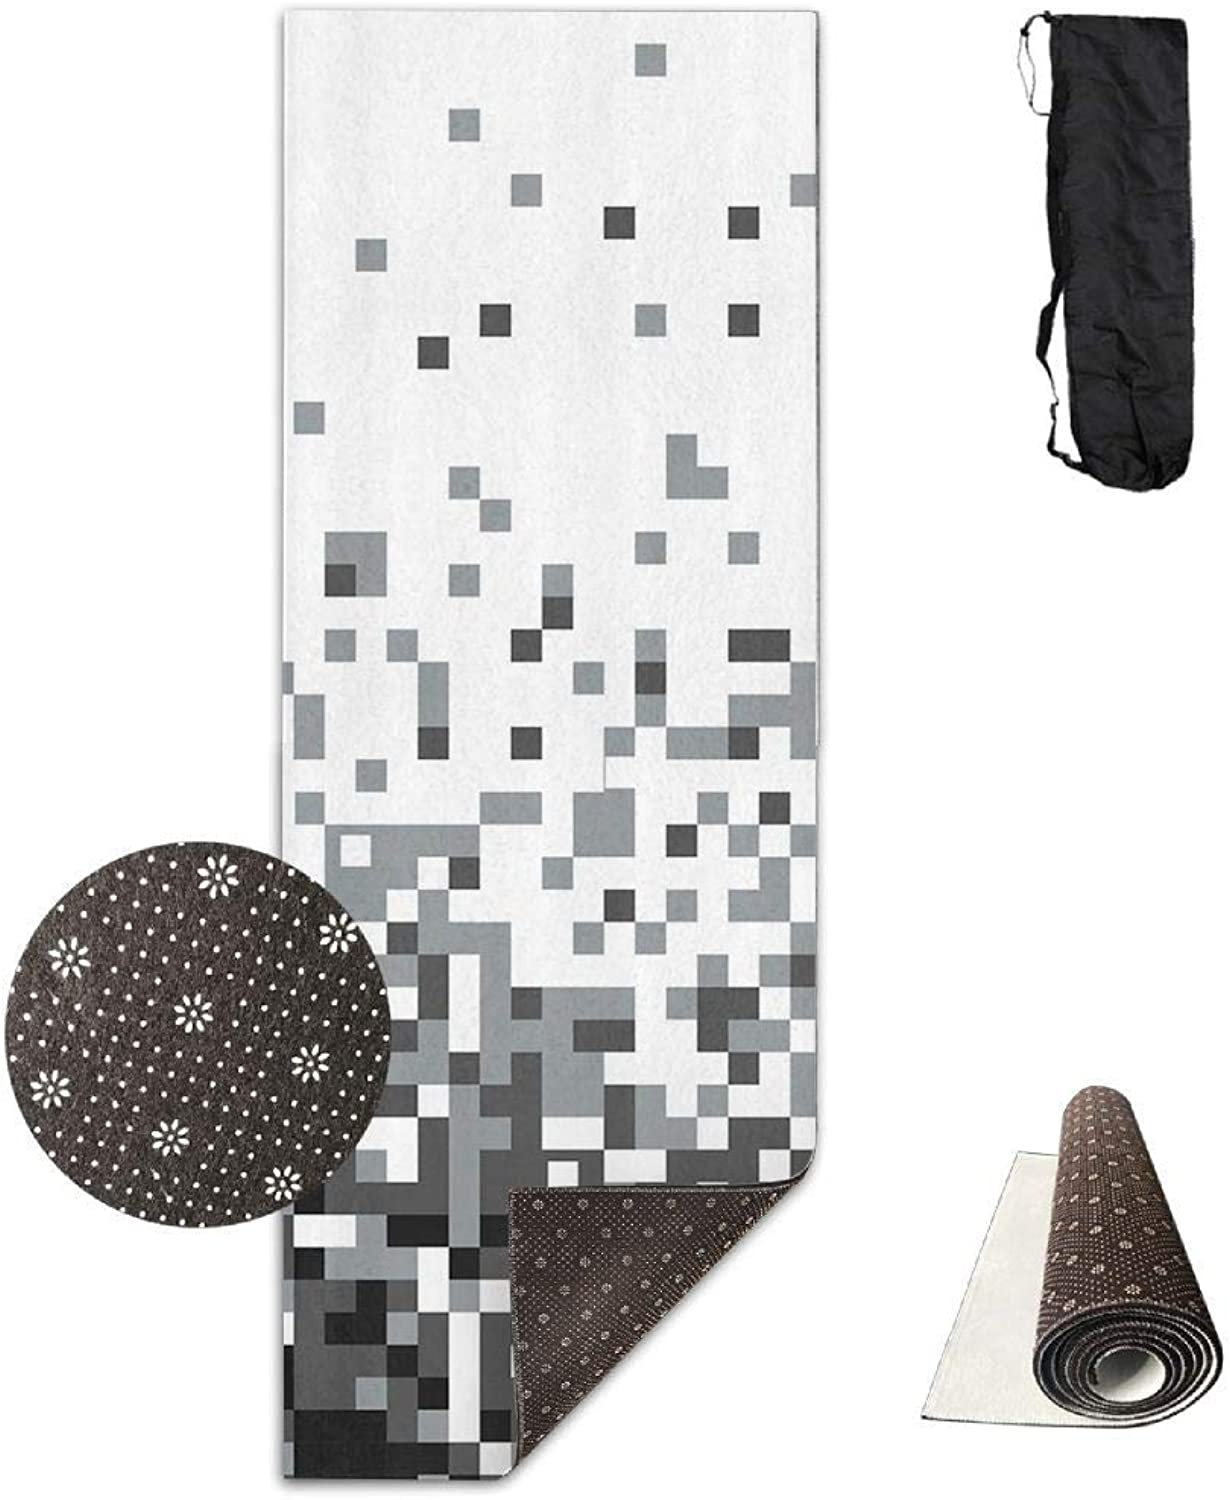 70inch Long 28inch Wide Comfort Velvet Yoga Mat, Geometric Squares Abstract Mat Carrying Strap & Bag